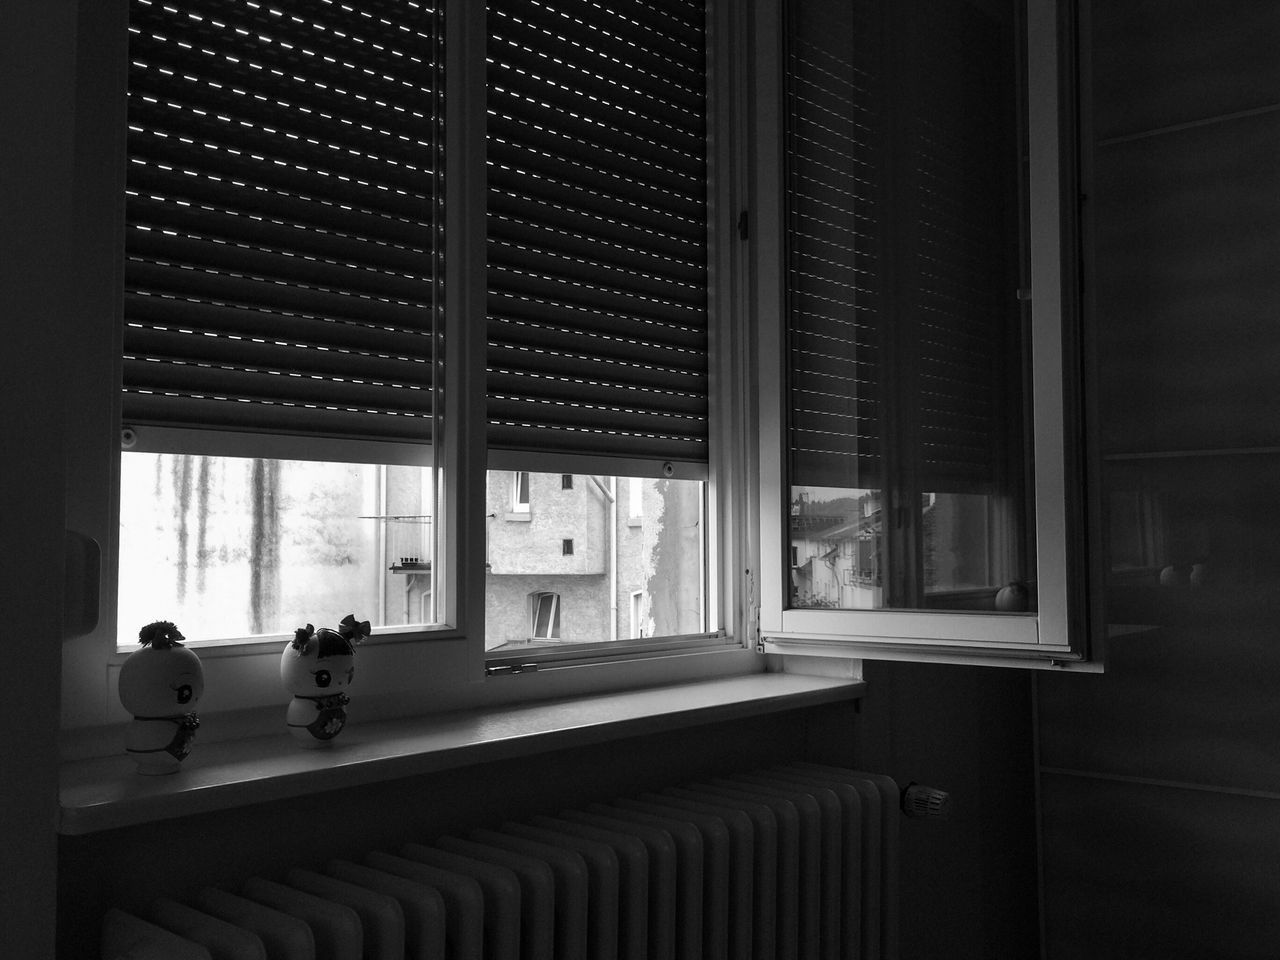 Dolls On Window Sill At Home